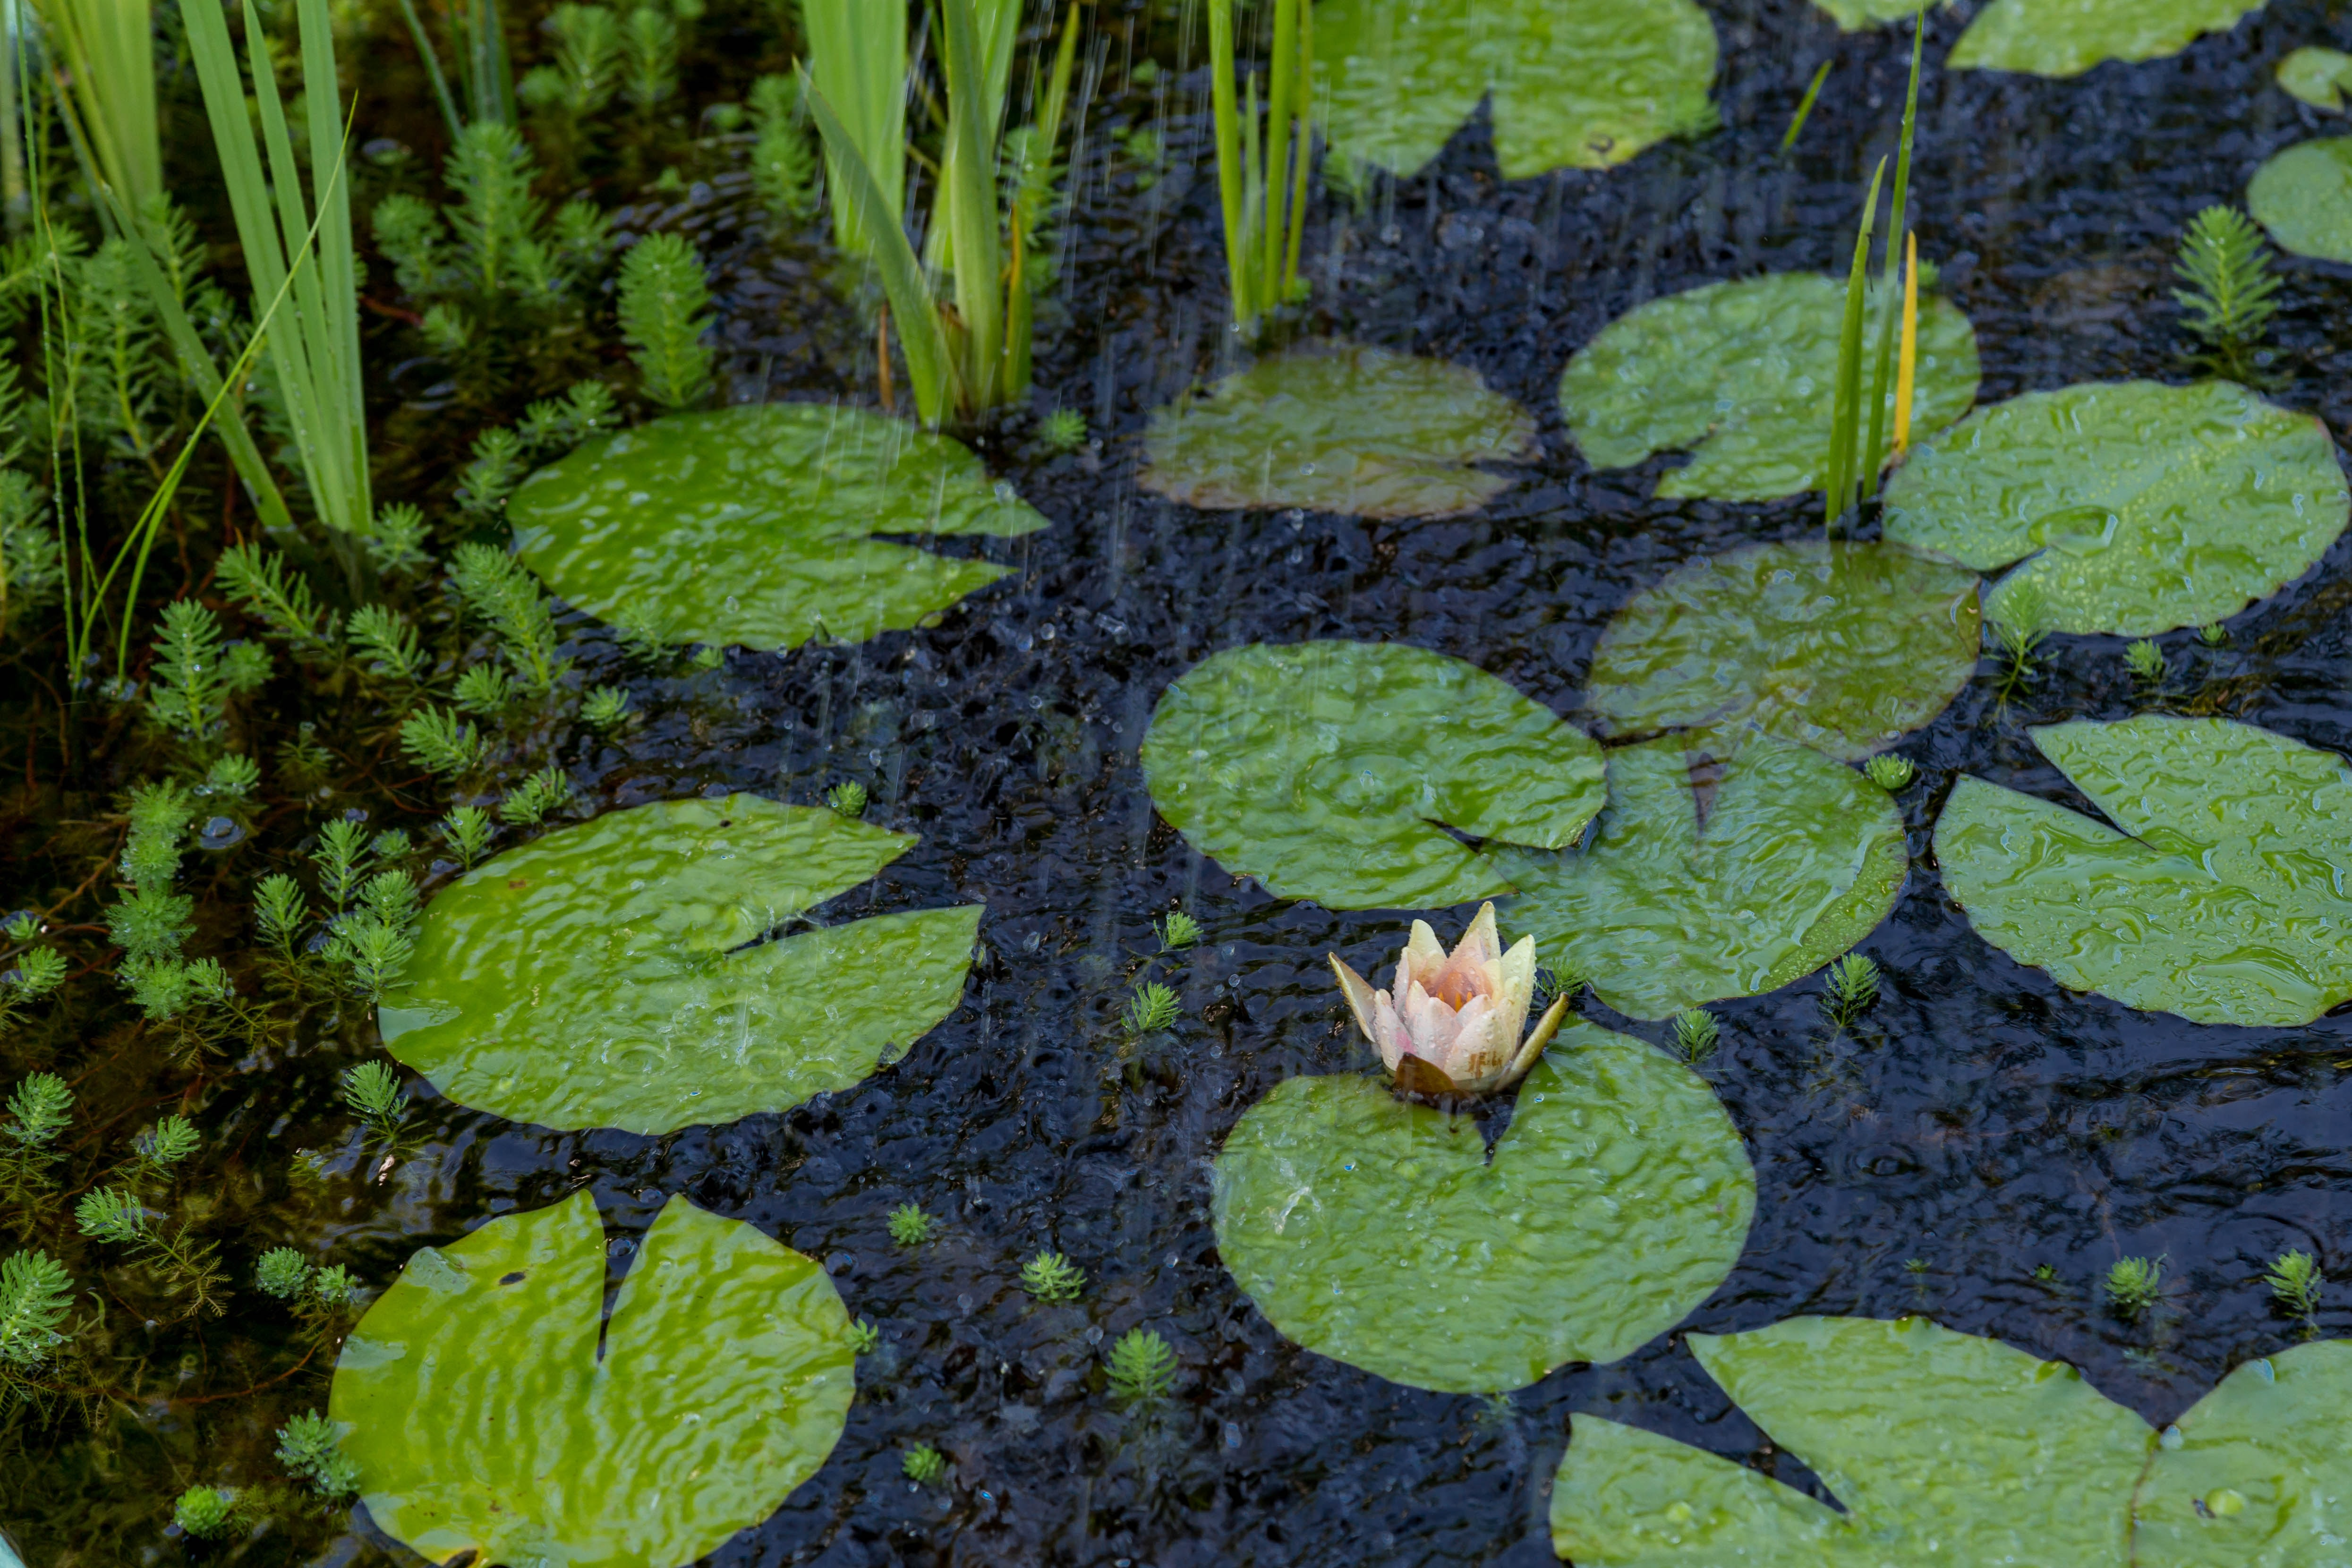 white and orange water lily on water